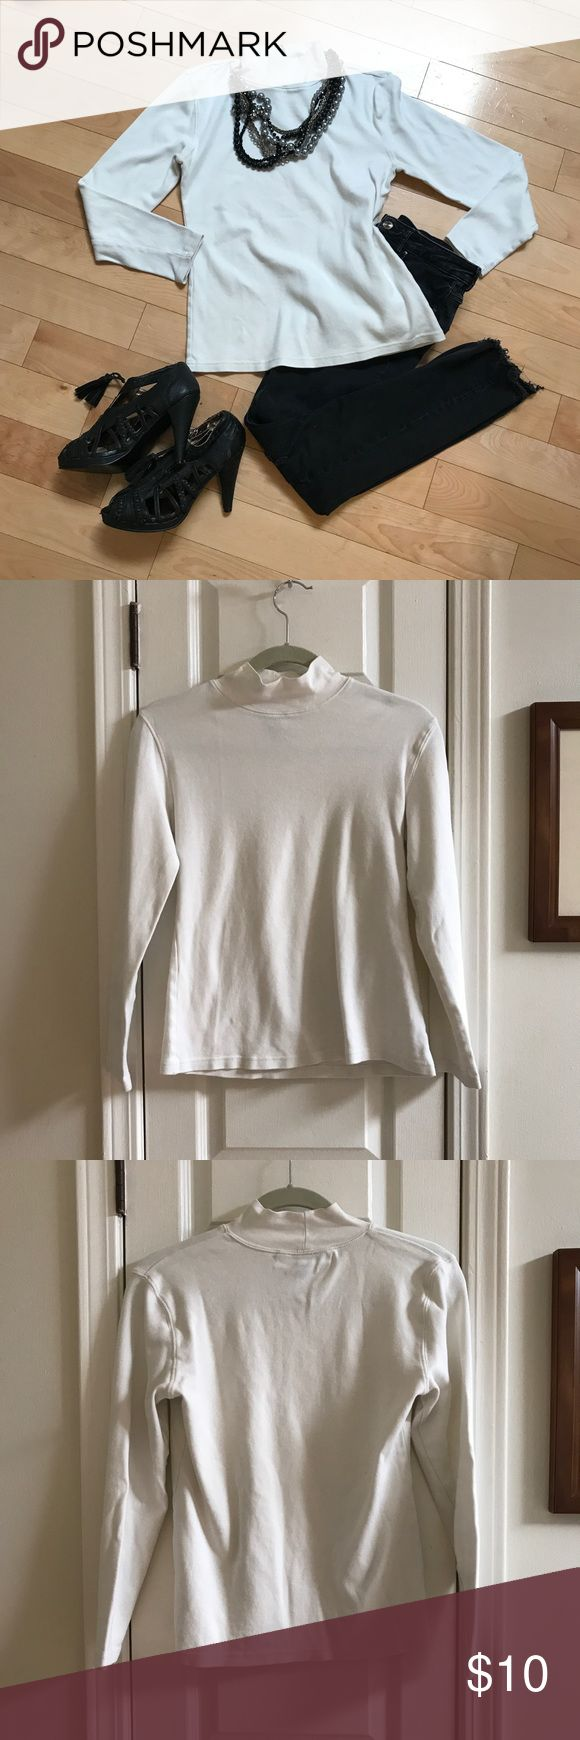 Karen Scott White Turtle Neck Size M Like New! 😱 100% Cotton Karen Scott long sleeve turtle neck. Size Medium. Like new condition!! 👌Dress it up or down!! 100% Cotton . Karen Scott Tops Tees - Long Sleeve